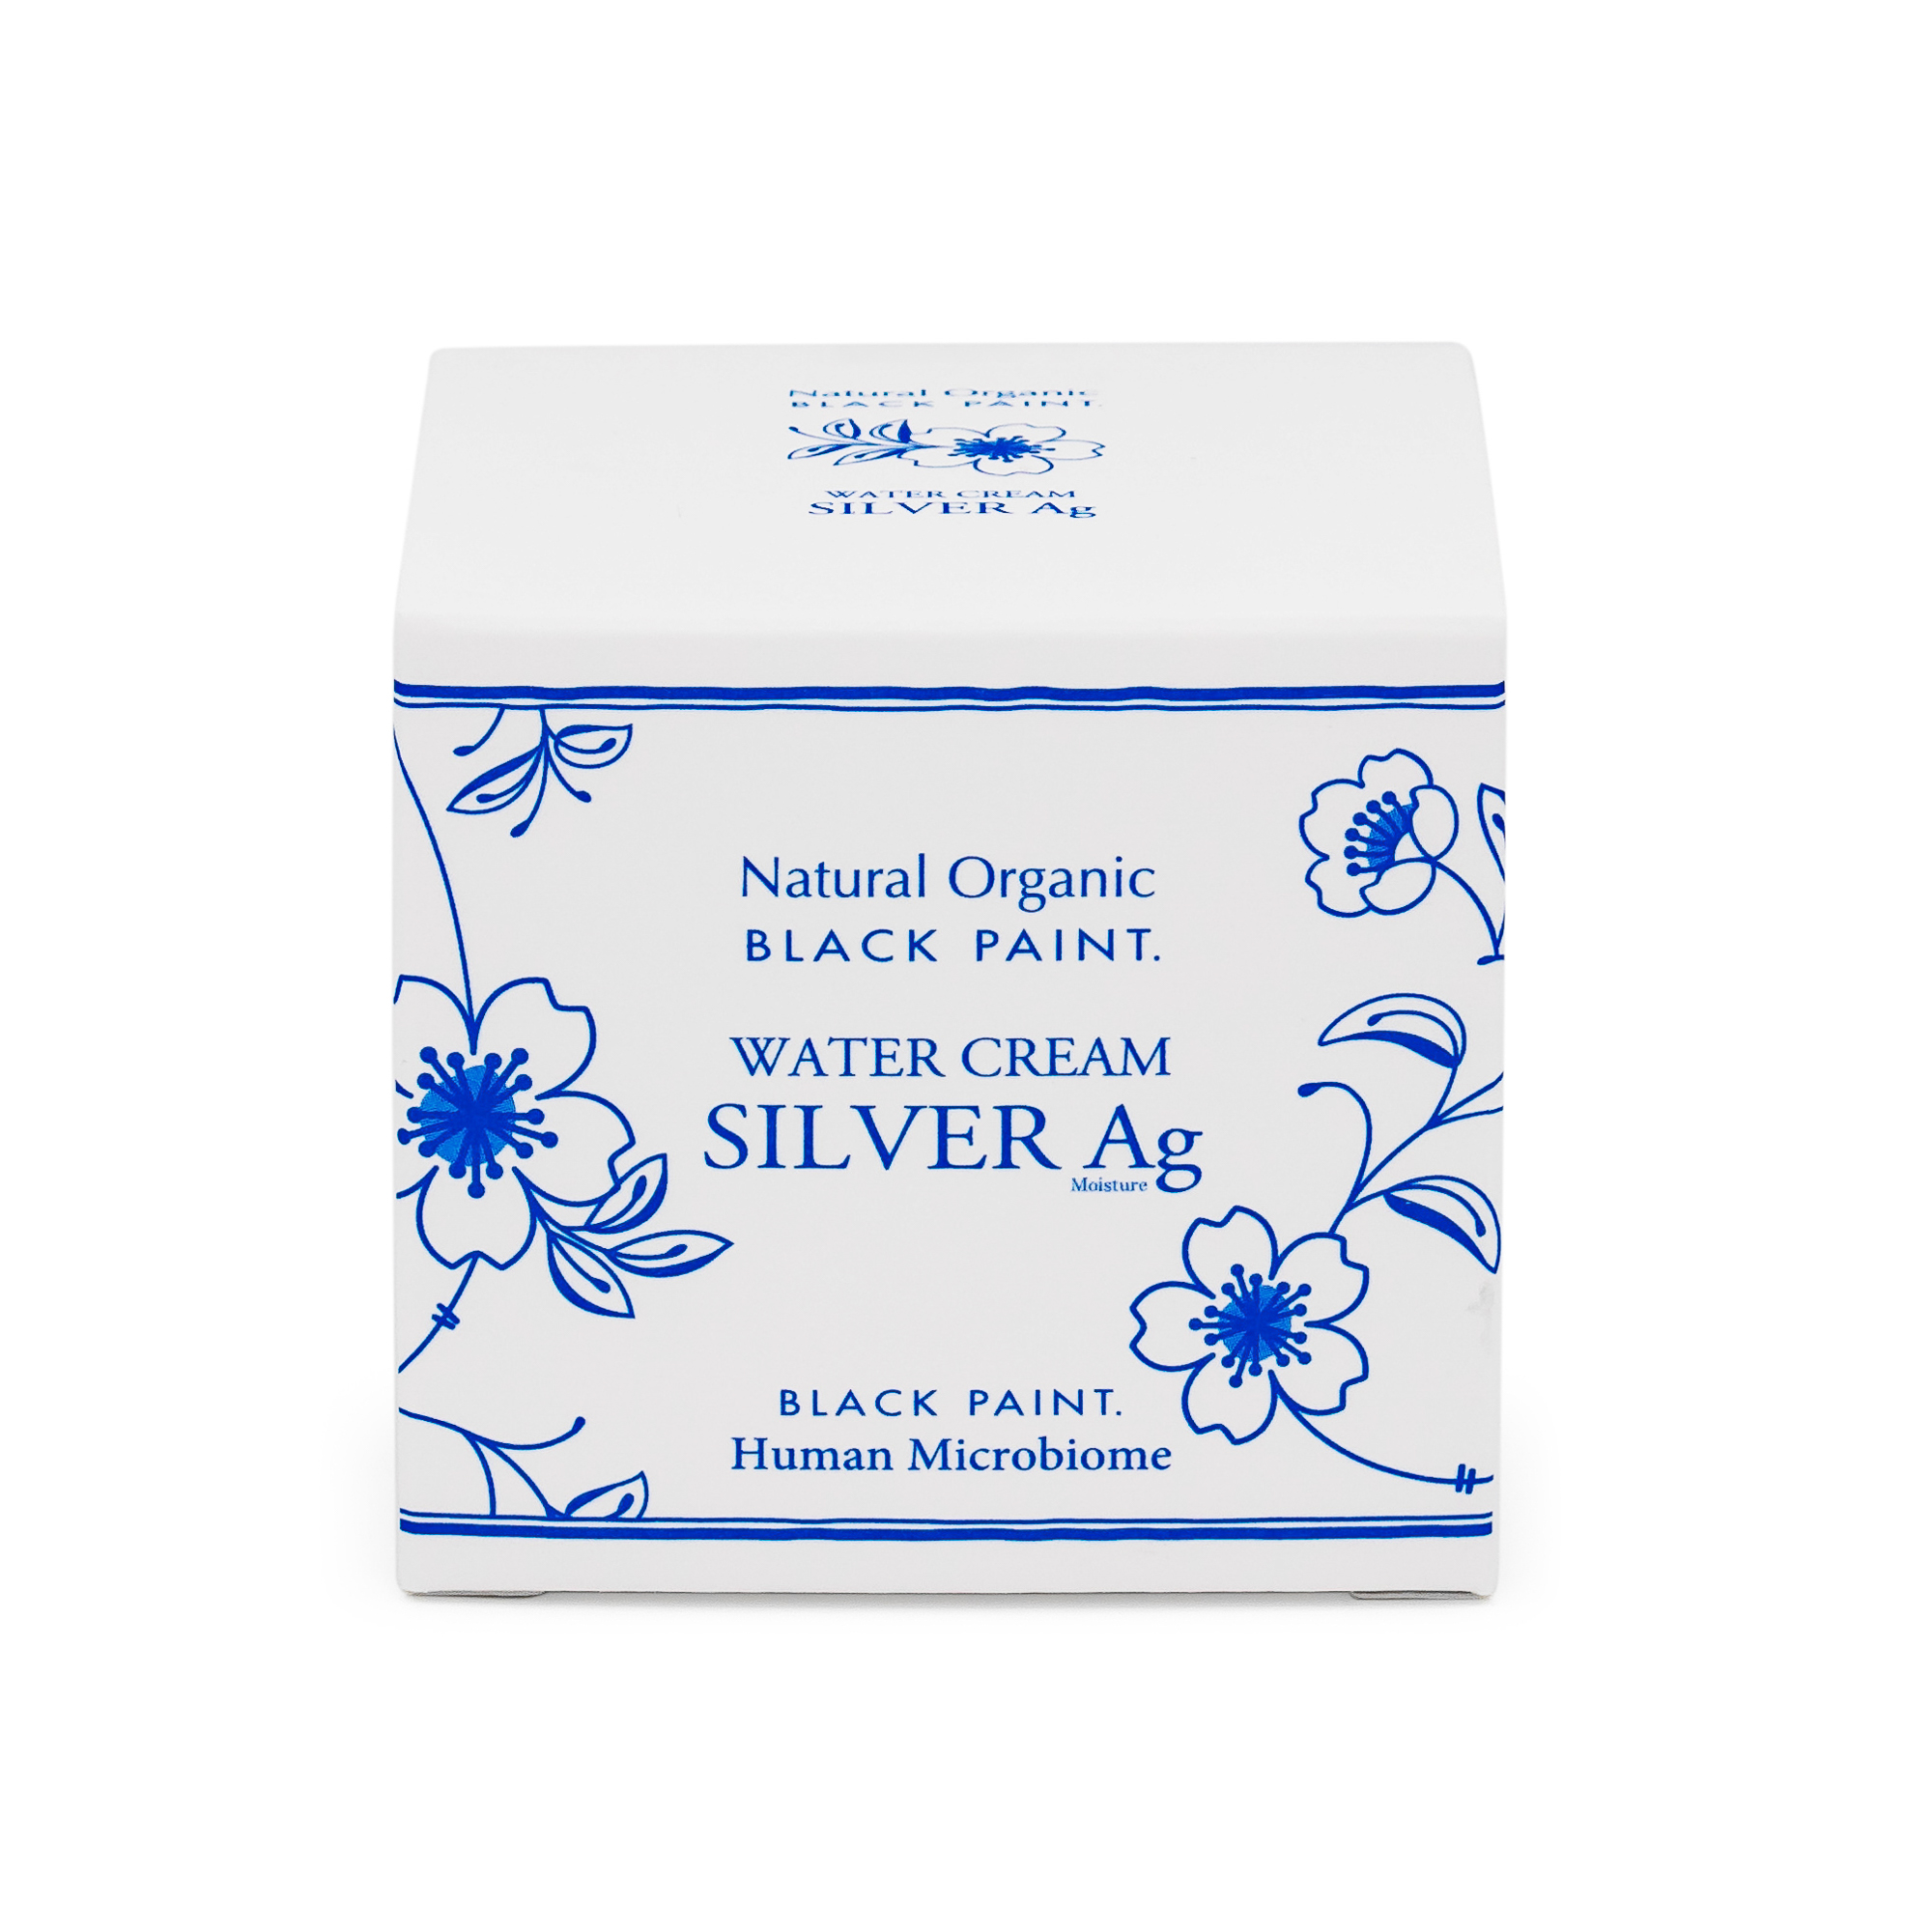 Water Cream Silver 25g with Human Microbiome - box front